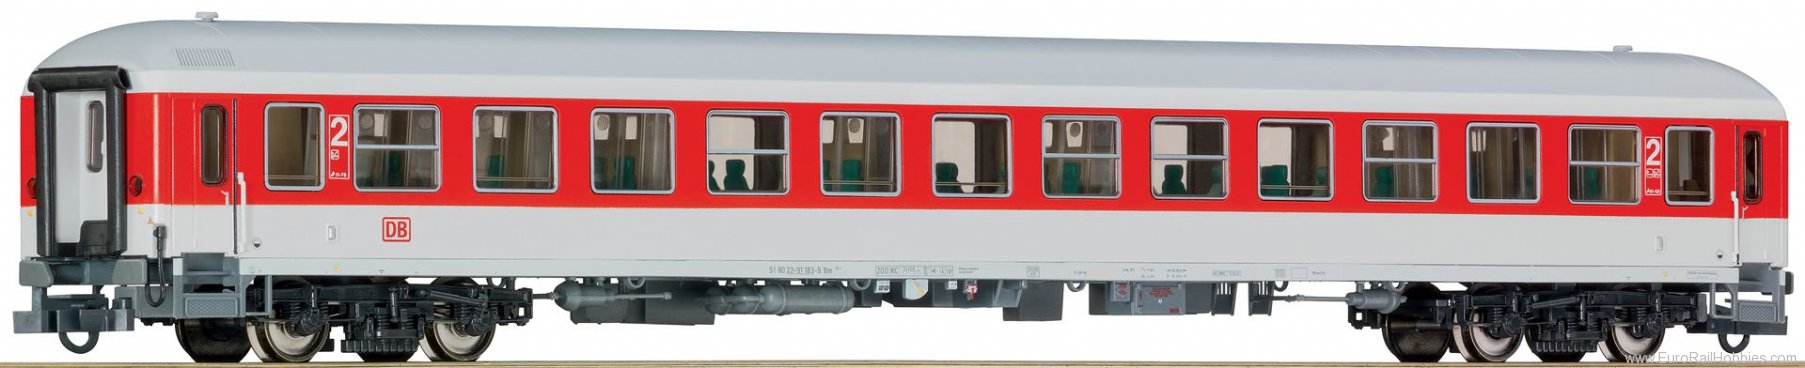 Roco 64422 DB AG Bimz Express Train Passenger car 2nd cl